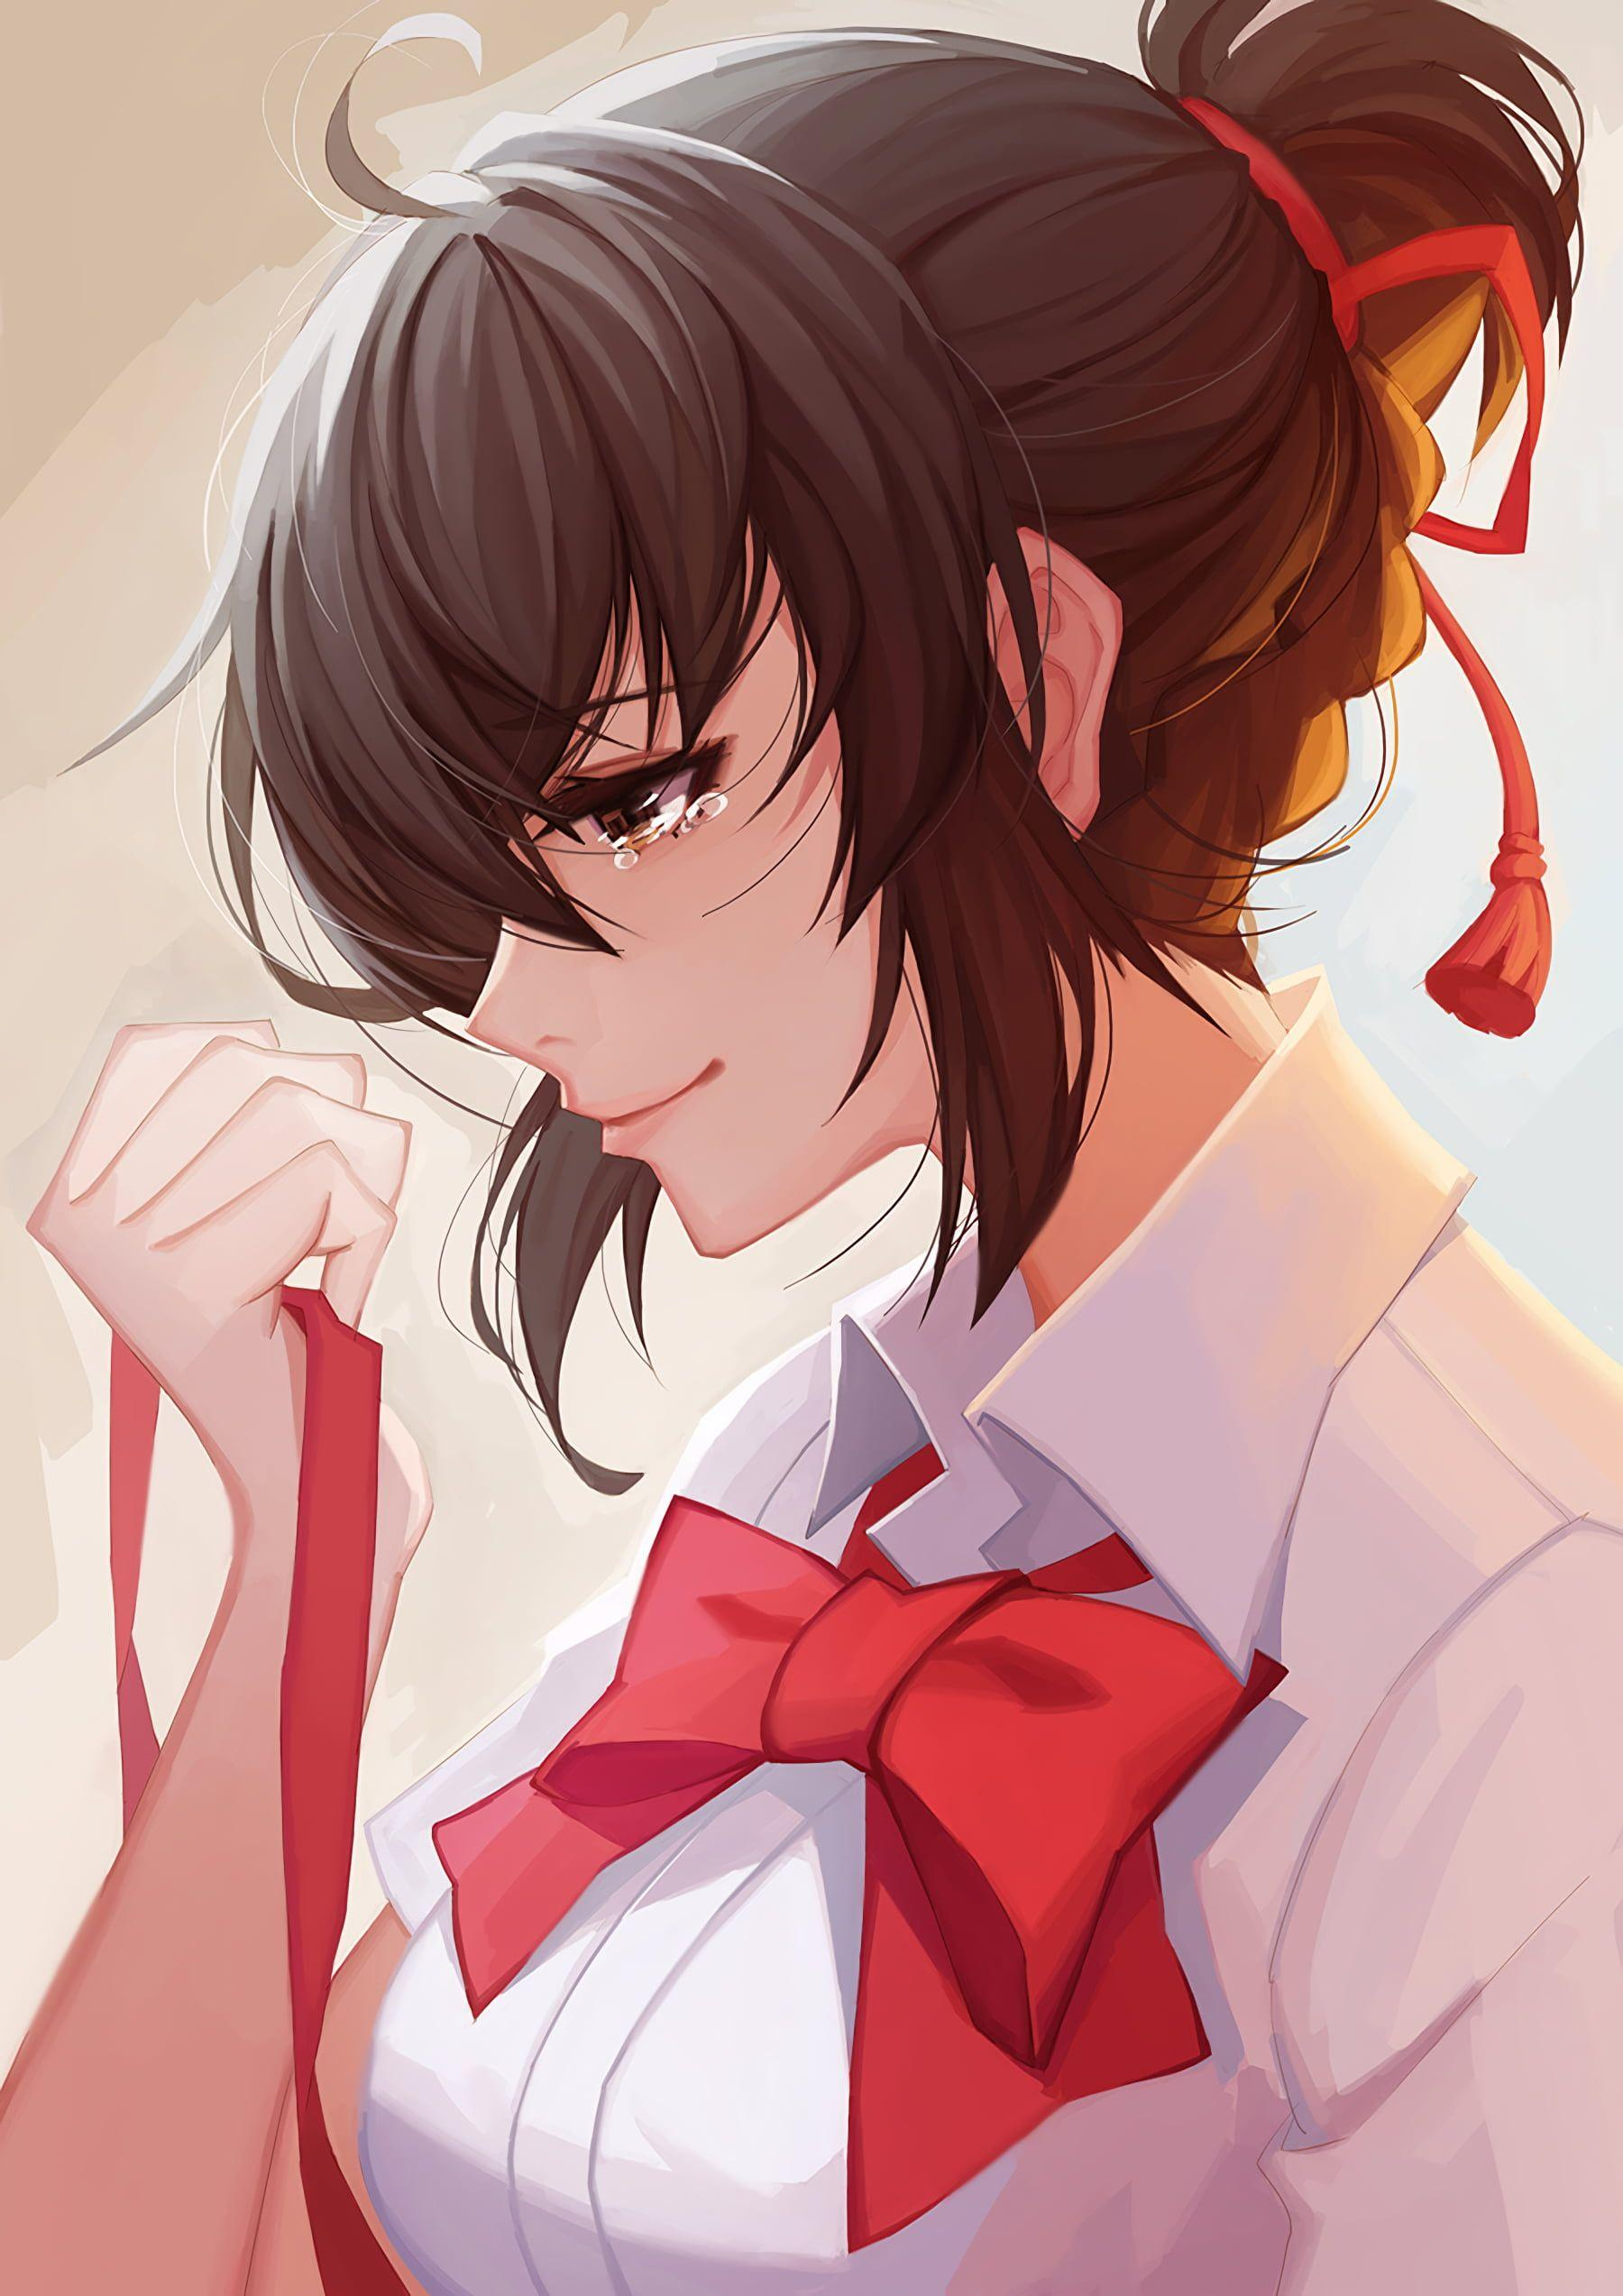 Anime woman wearing white and red top with teary eye wallpapers HD